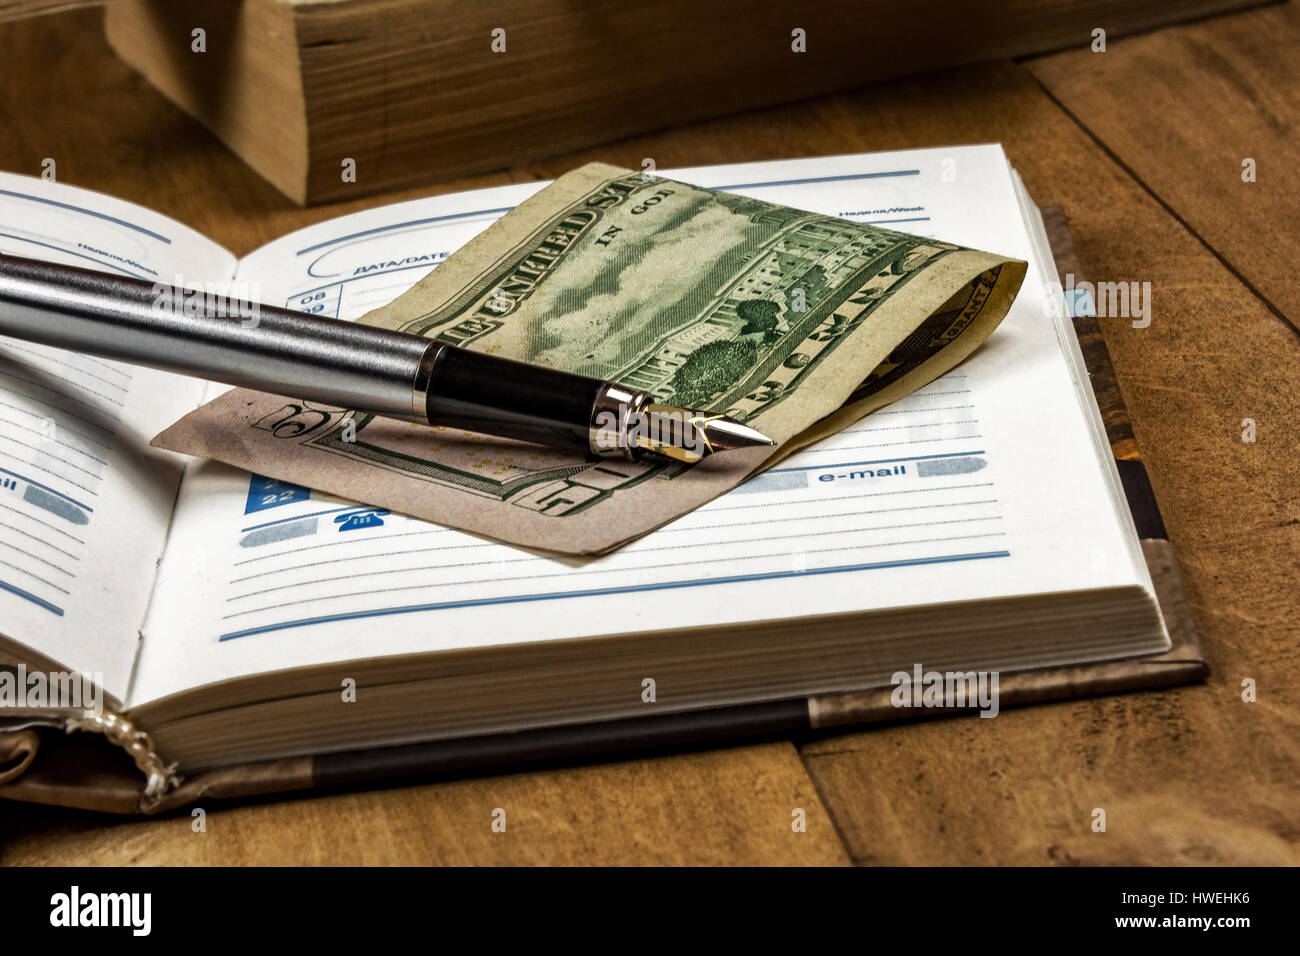 On the wooden surface is an open diary, a money note and fountain pen - Stock Image